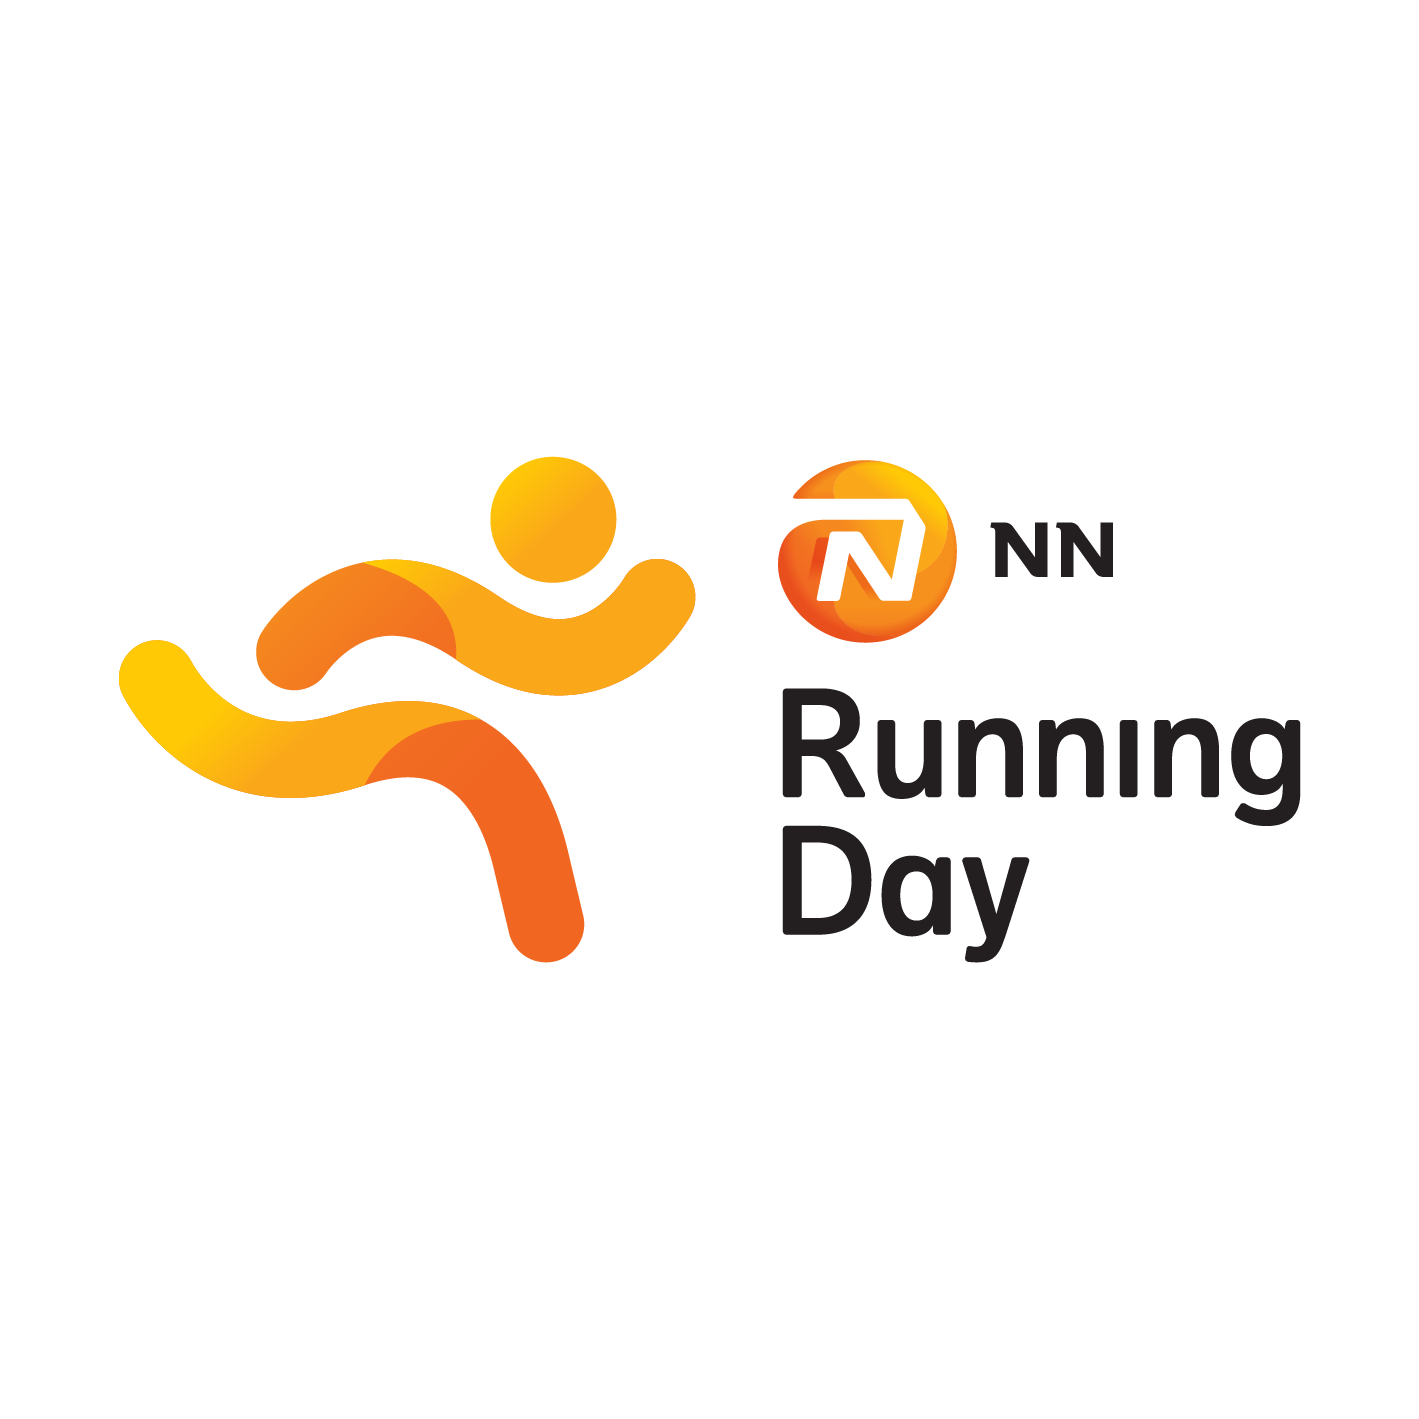 nn running day